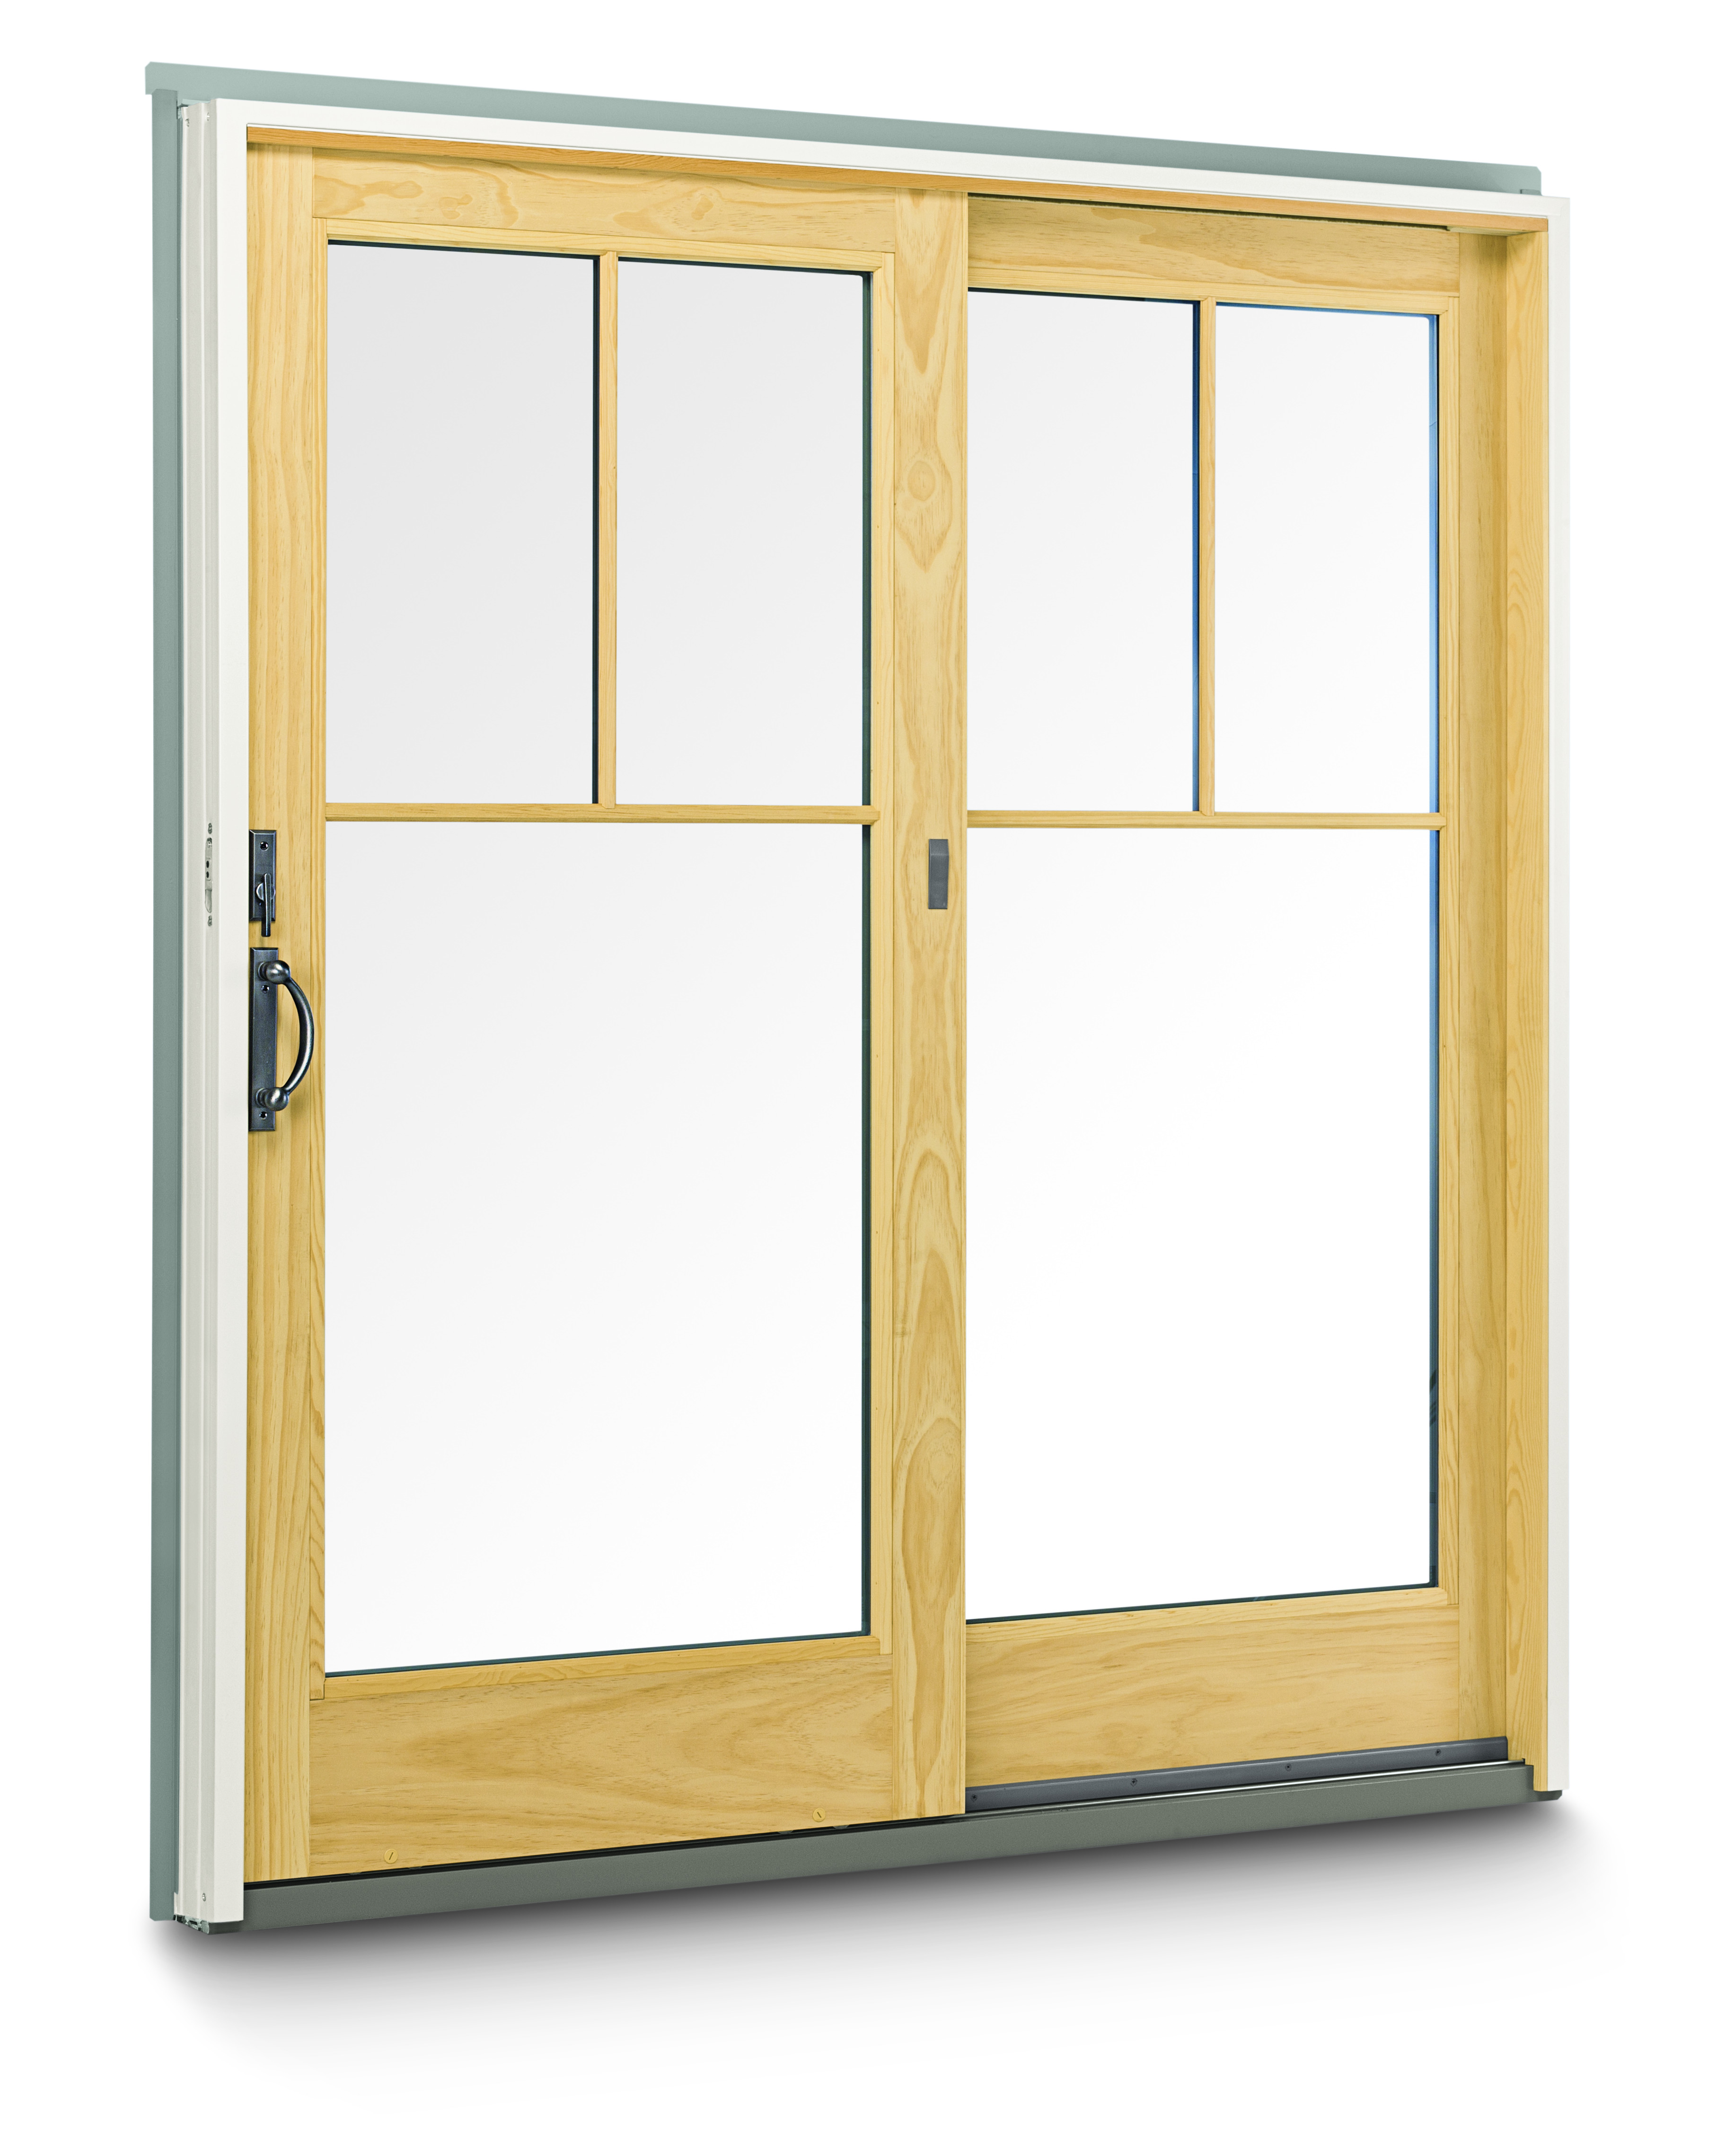 Andersen frenchwood gliding patio door live in store for Andersen 400 series reviews